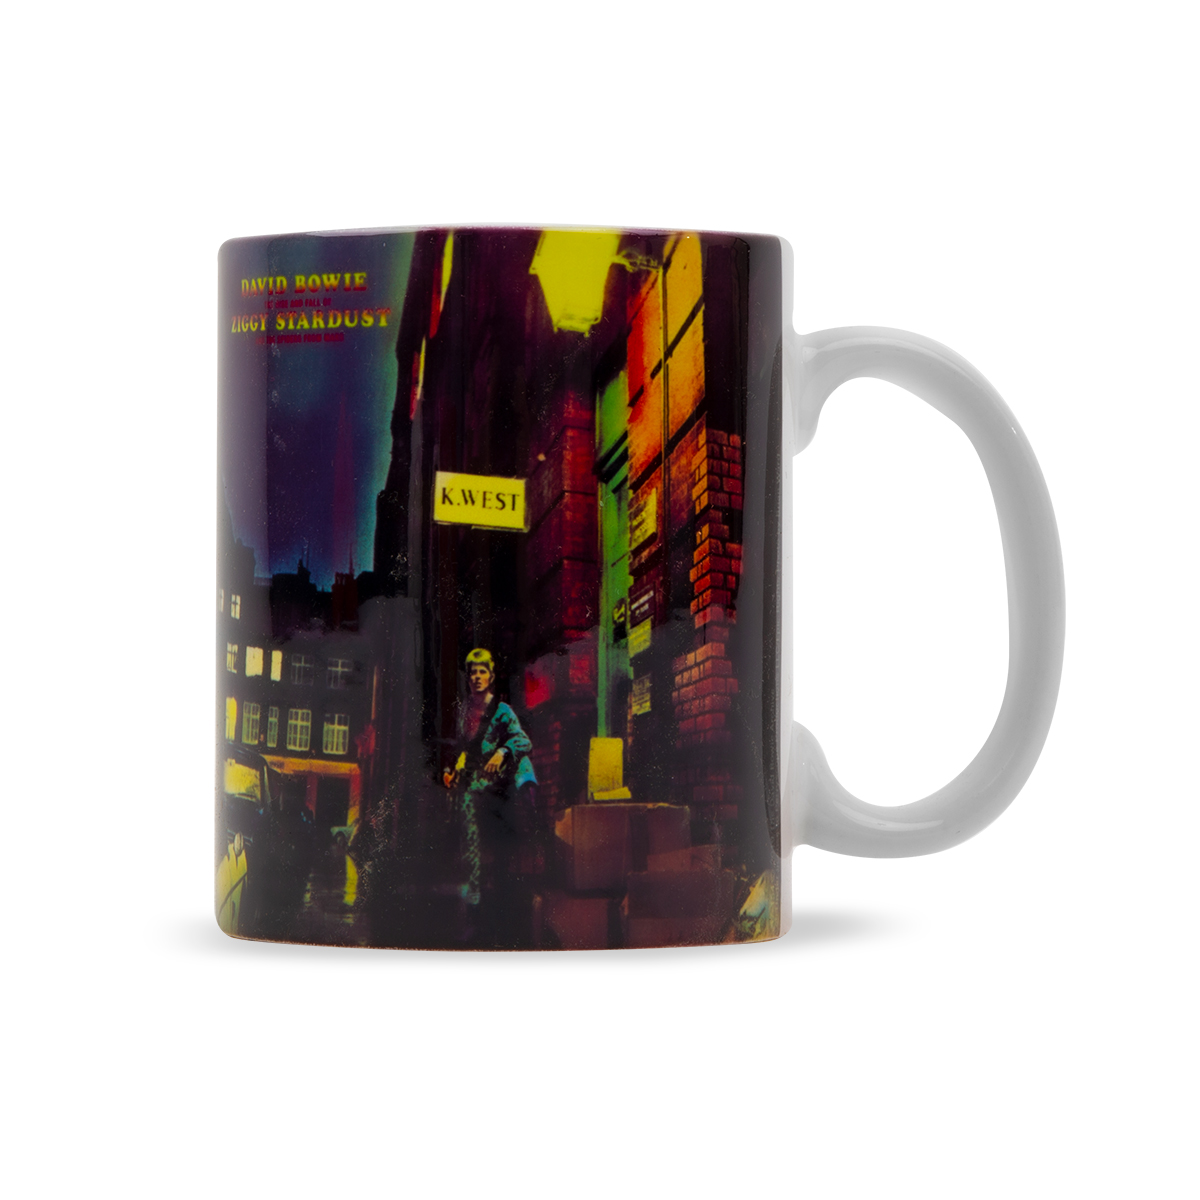 Ziggy Stardust Album Cover Mug